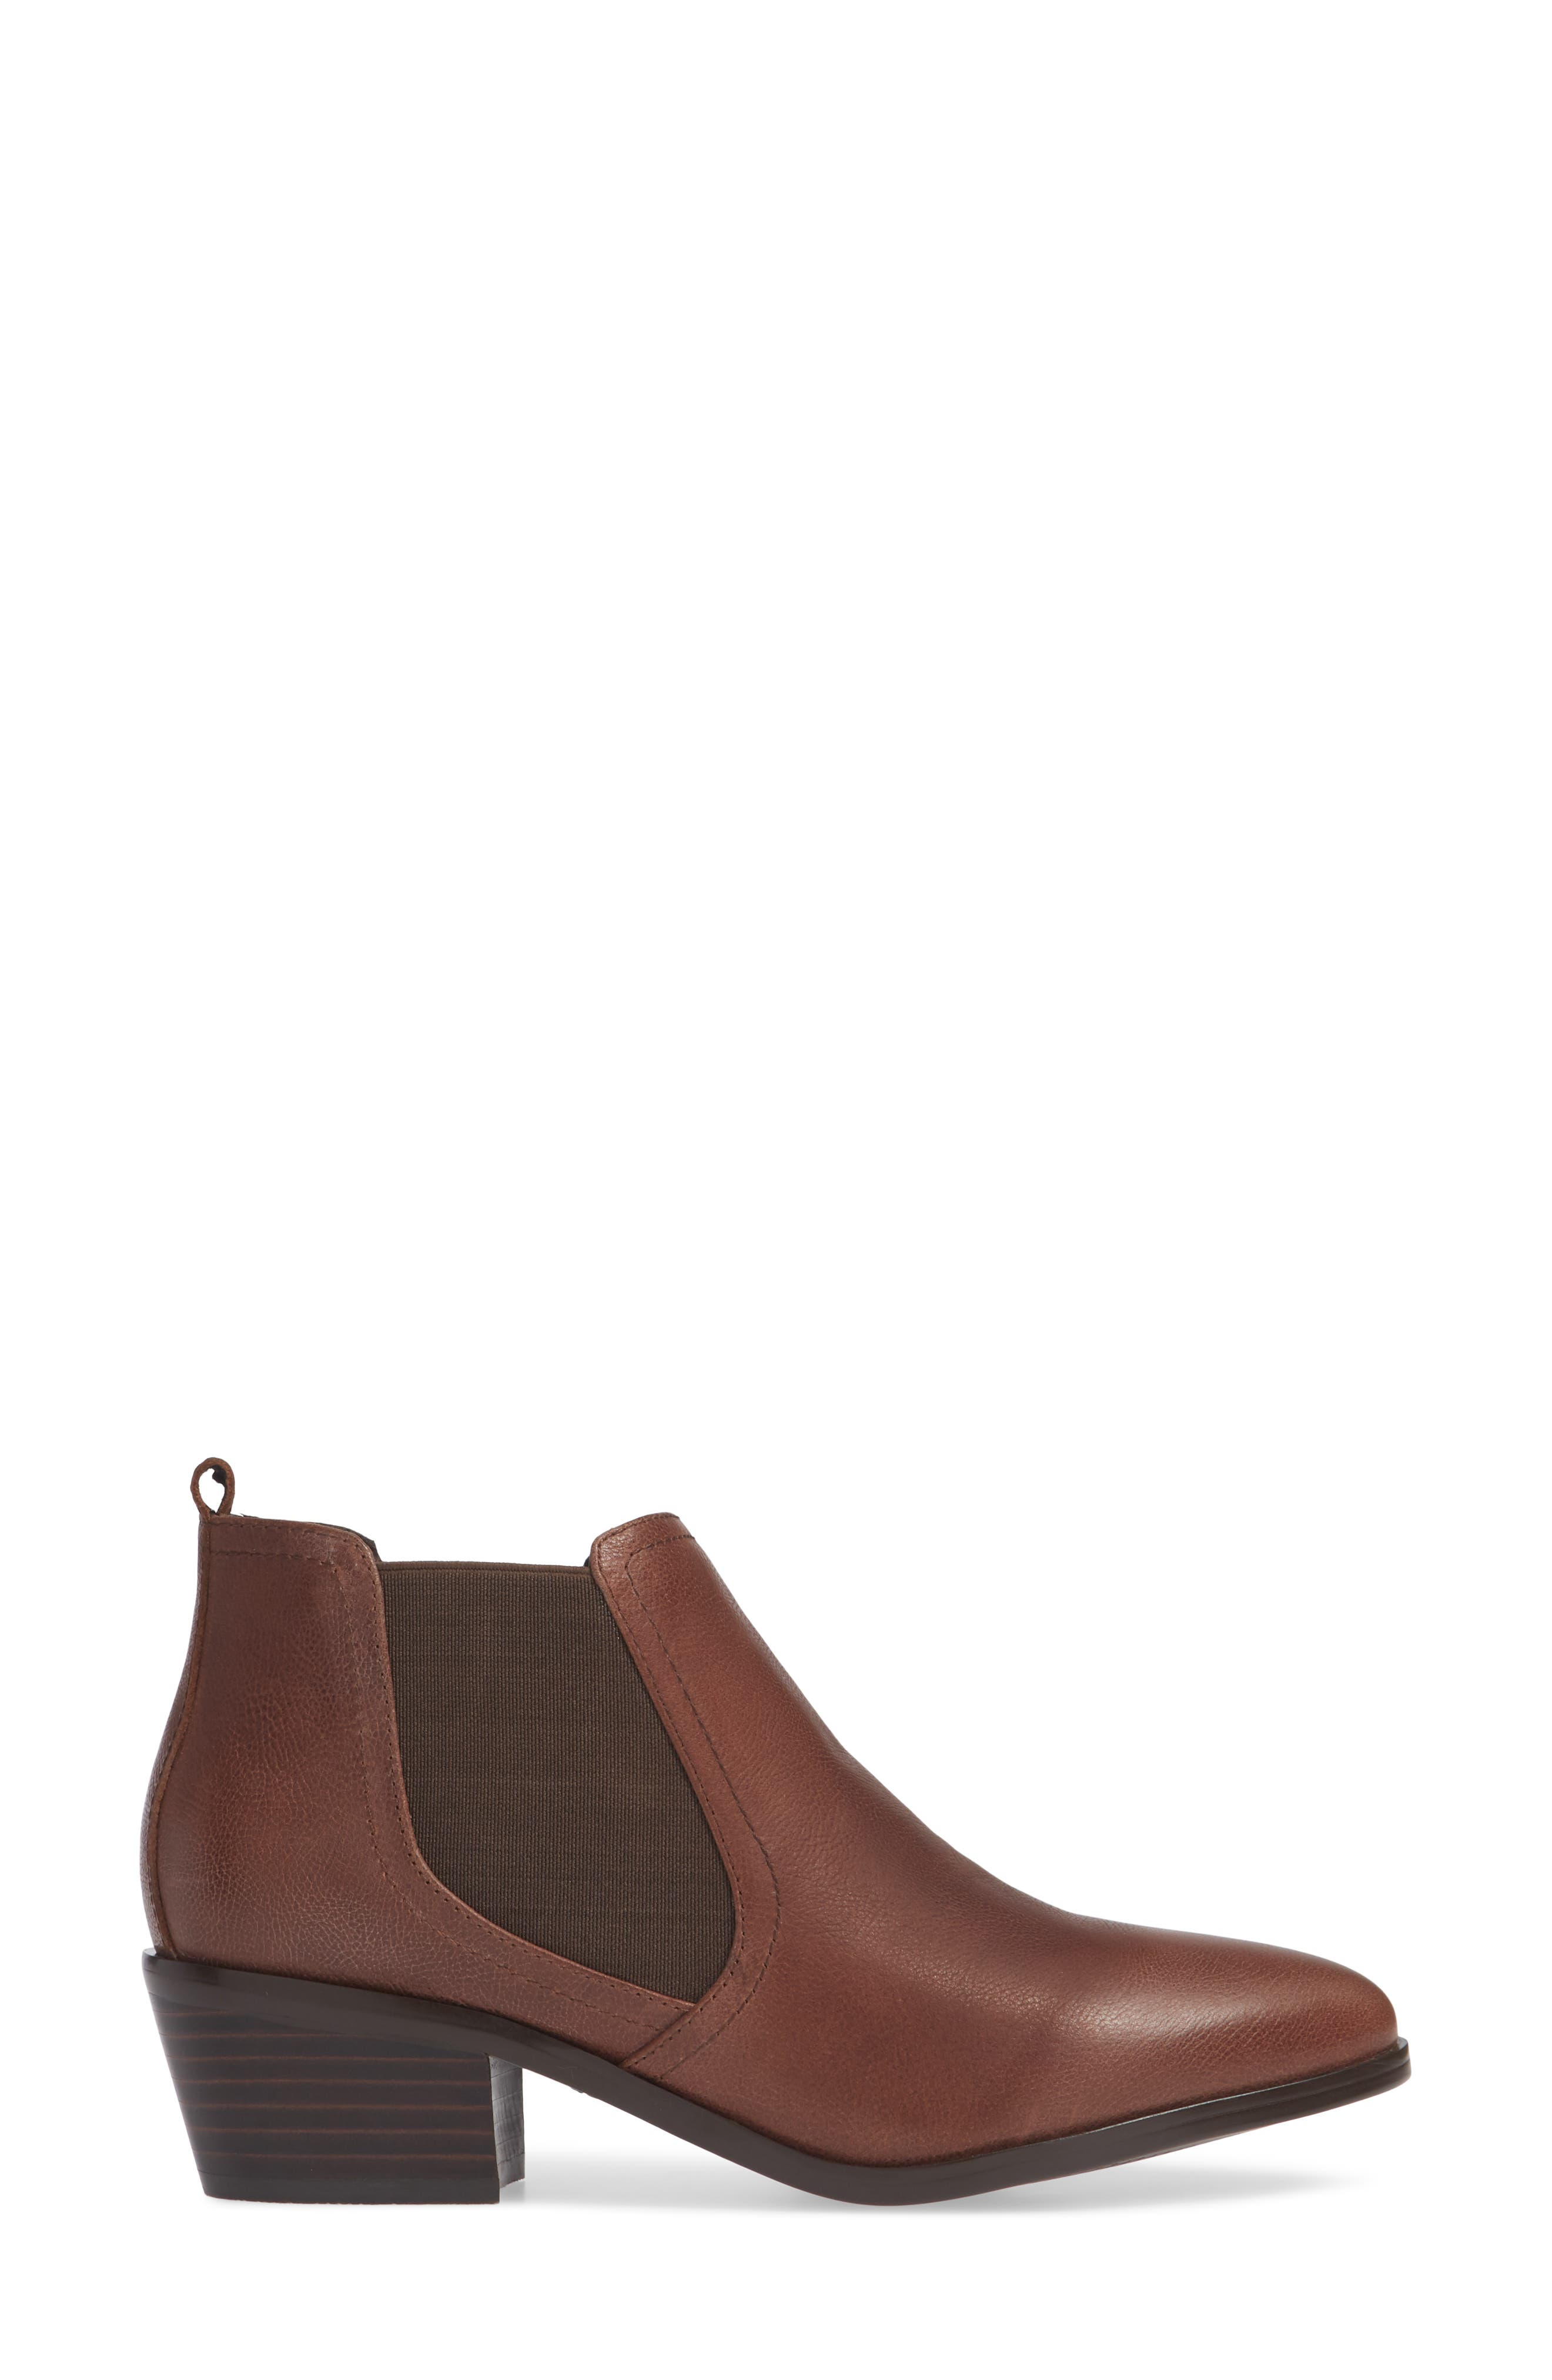 Maxie Chelsea Boot,                             Alternate thumbnail 3, color,                             LUGGAGE LEATHER